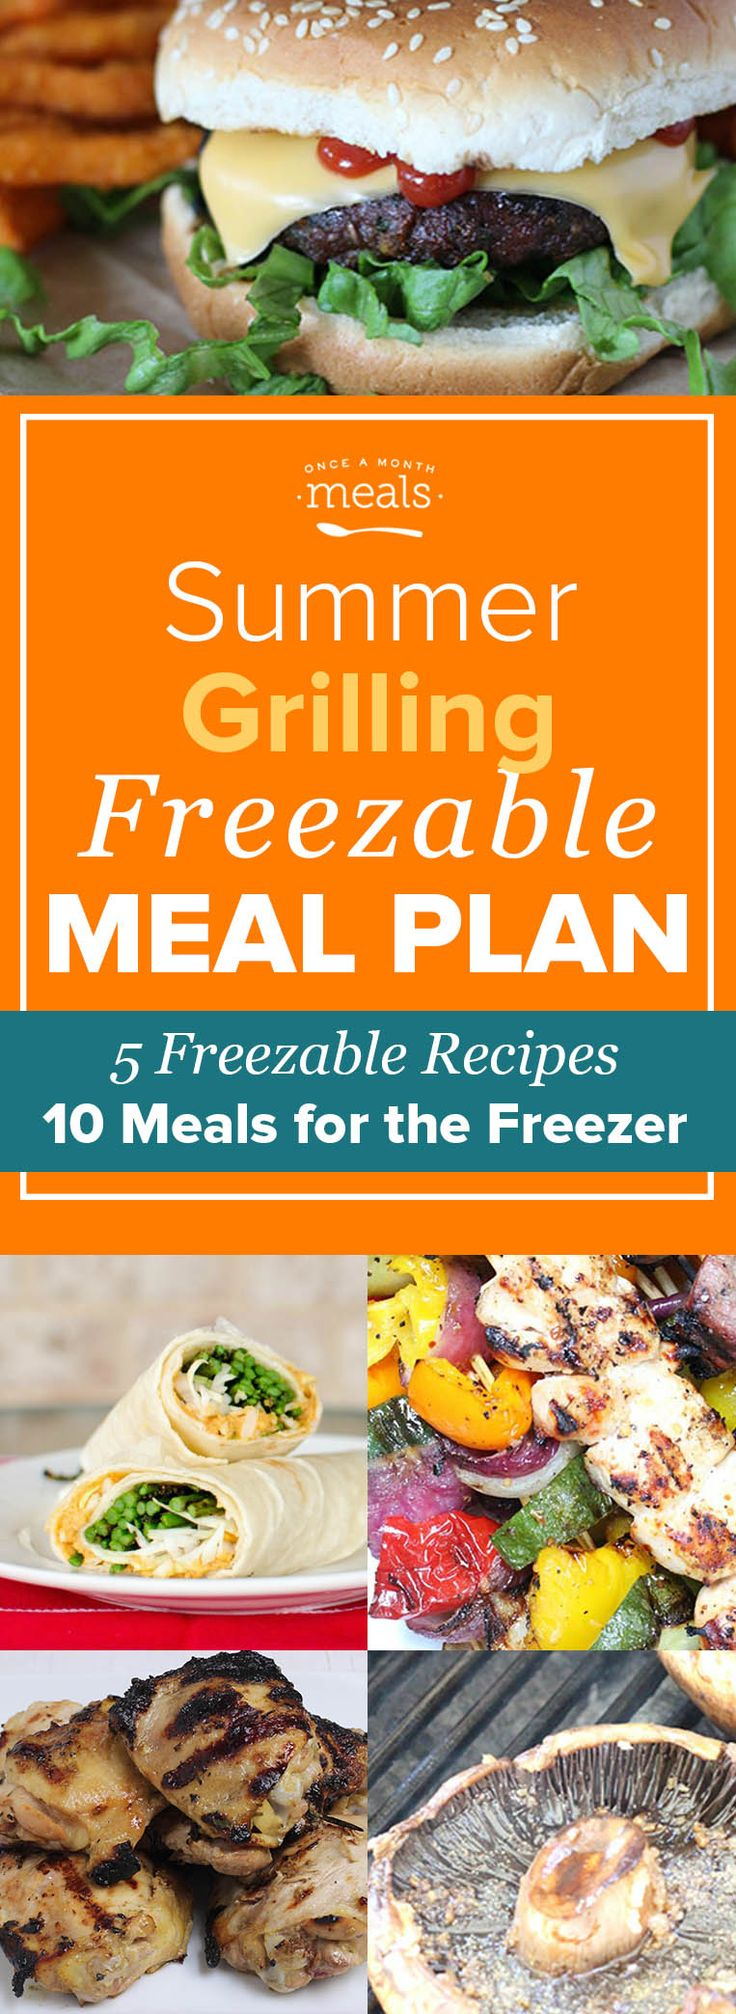 Enjoy a taste of summer and save time with our summer grilling menu of easy freezer meals! From burgers to kebabs stock up on cookout favorites in a flash. via @onceamonthmeals